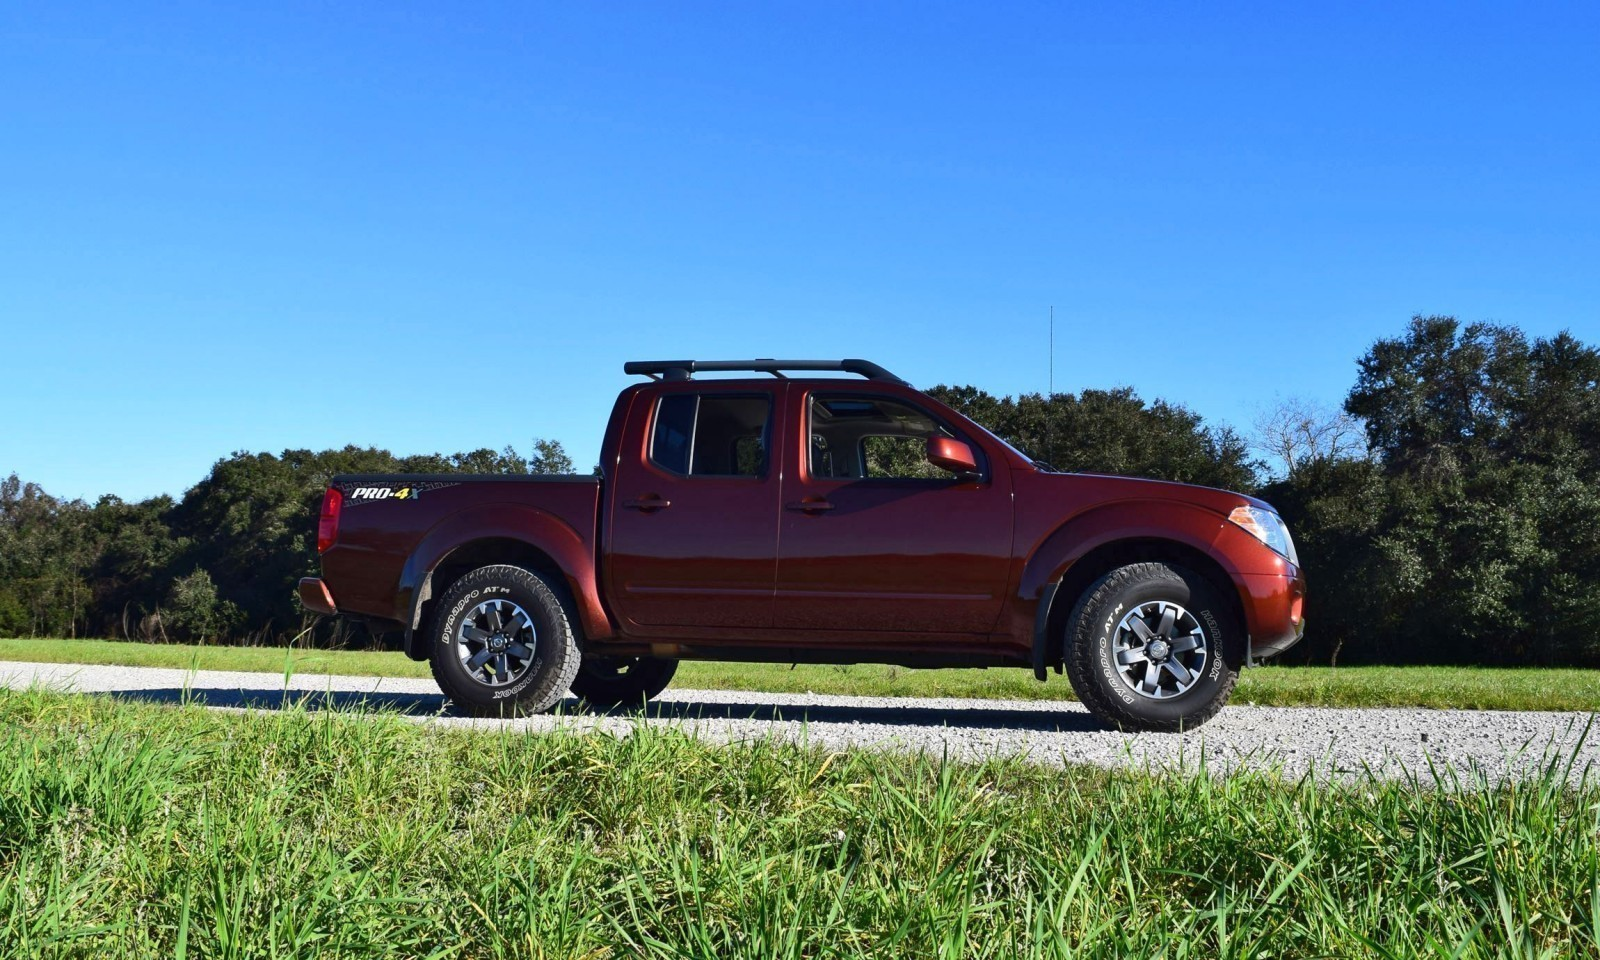 2015 nissan frontier 4x4 pro review autos post. Black Bedroom Furniture Sets. Home Design Ideas